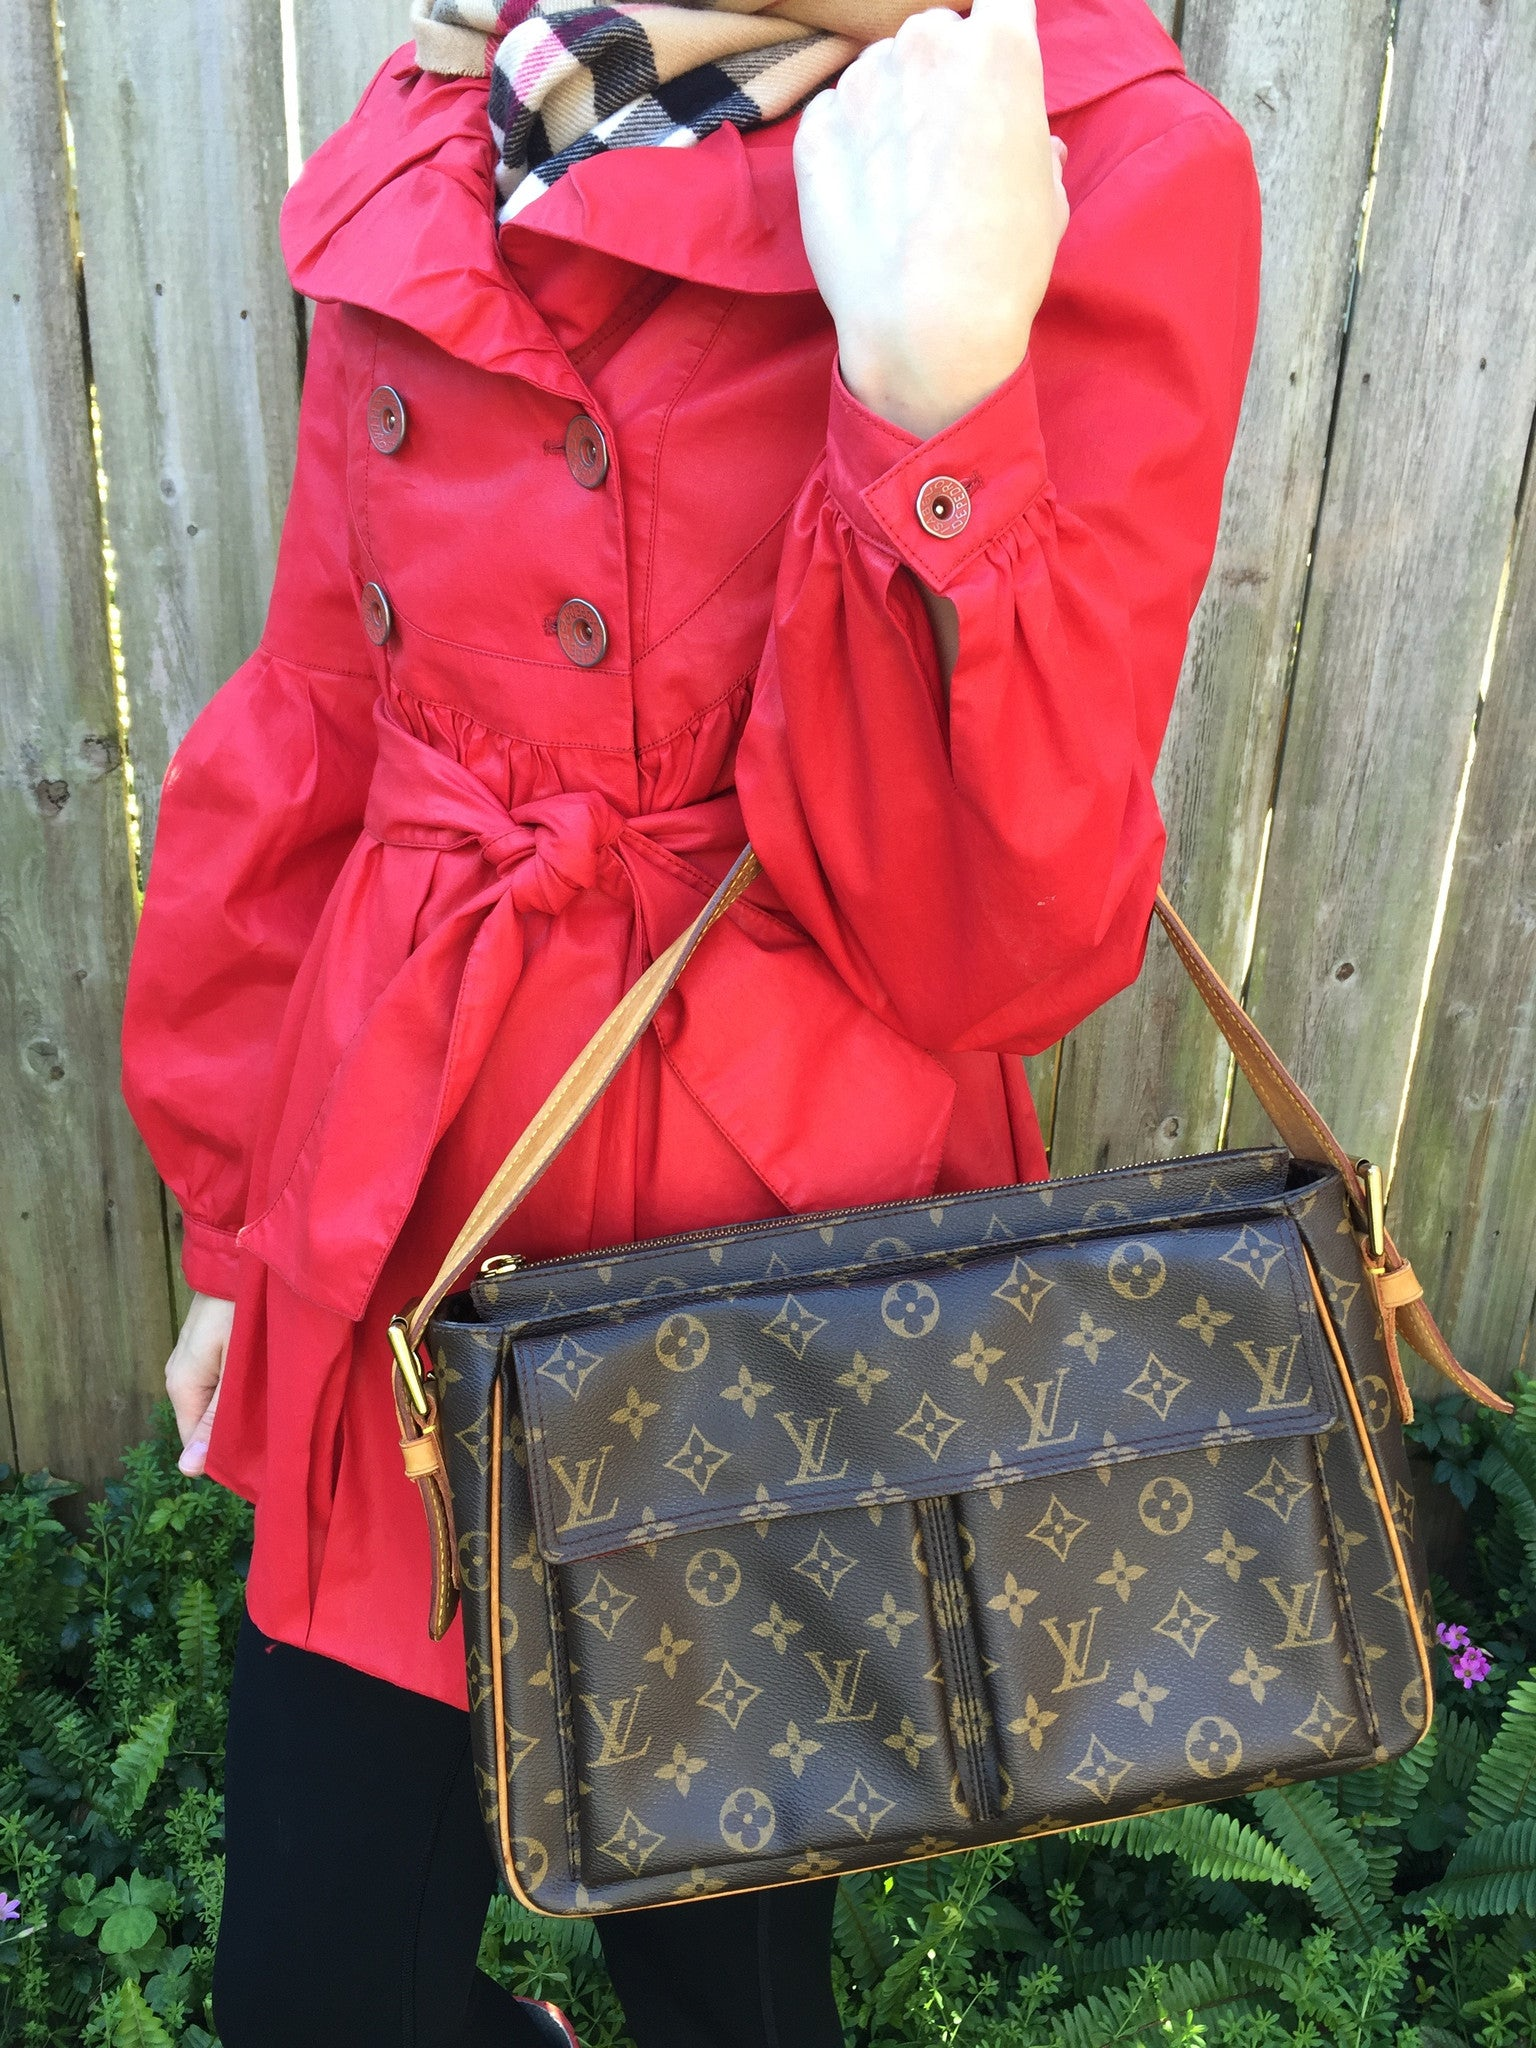 LOUIS VUITTON Viva Cite GM Shoulder Bag